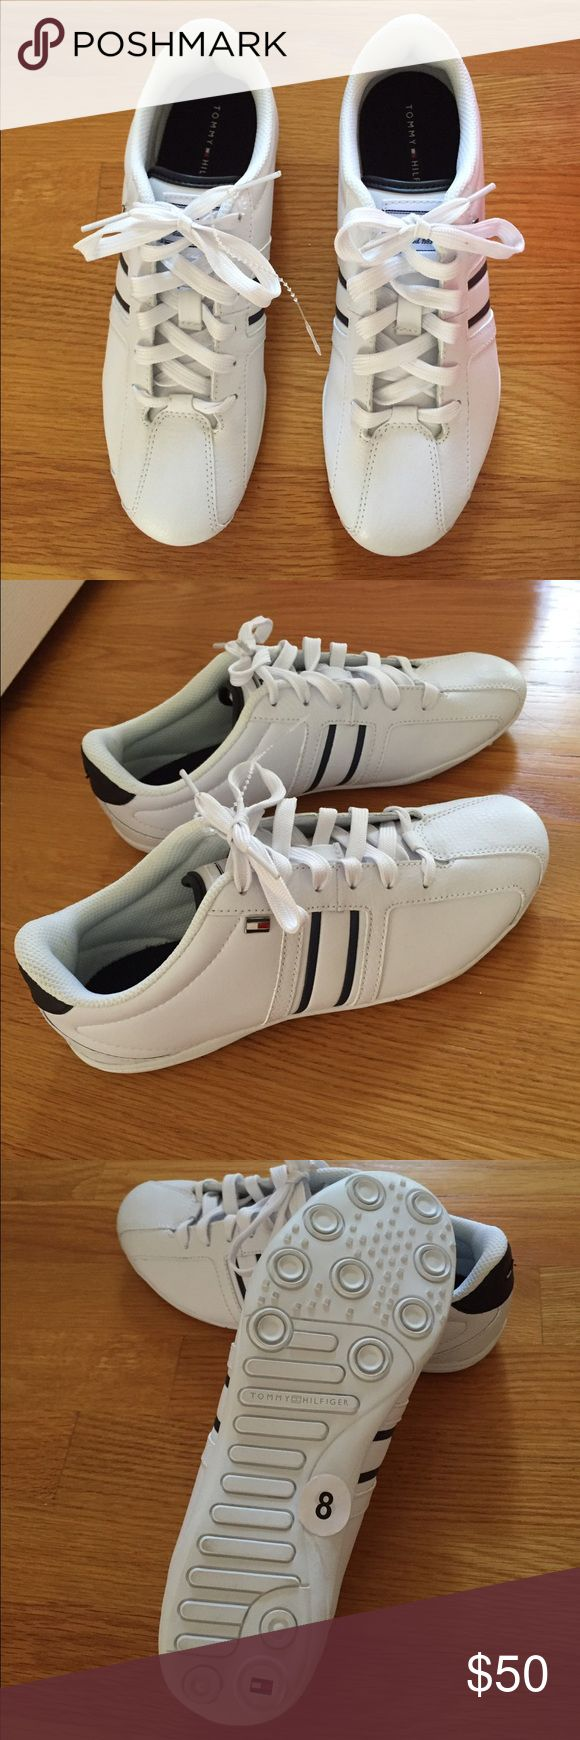 NEW Tommy Hilfiger Women's shoes size 8 NEW Tommy Hilfiger Women's shoes size 8 Tommy Hilfiger Shoes Sneakers